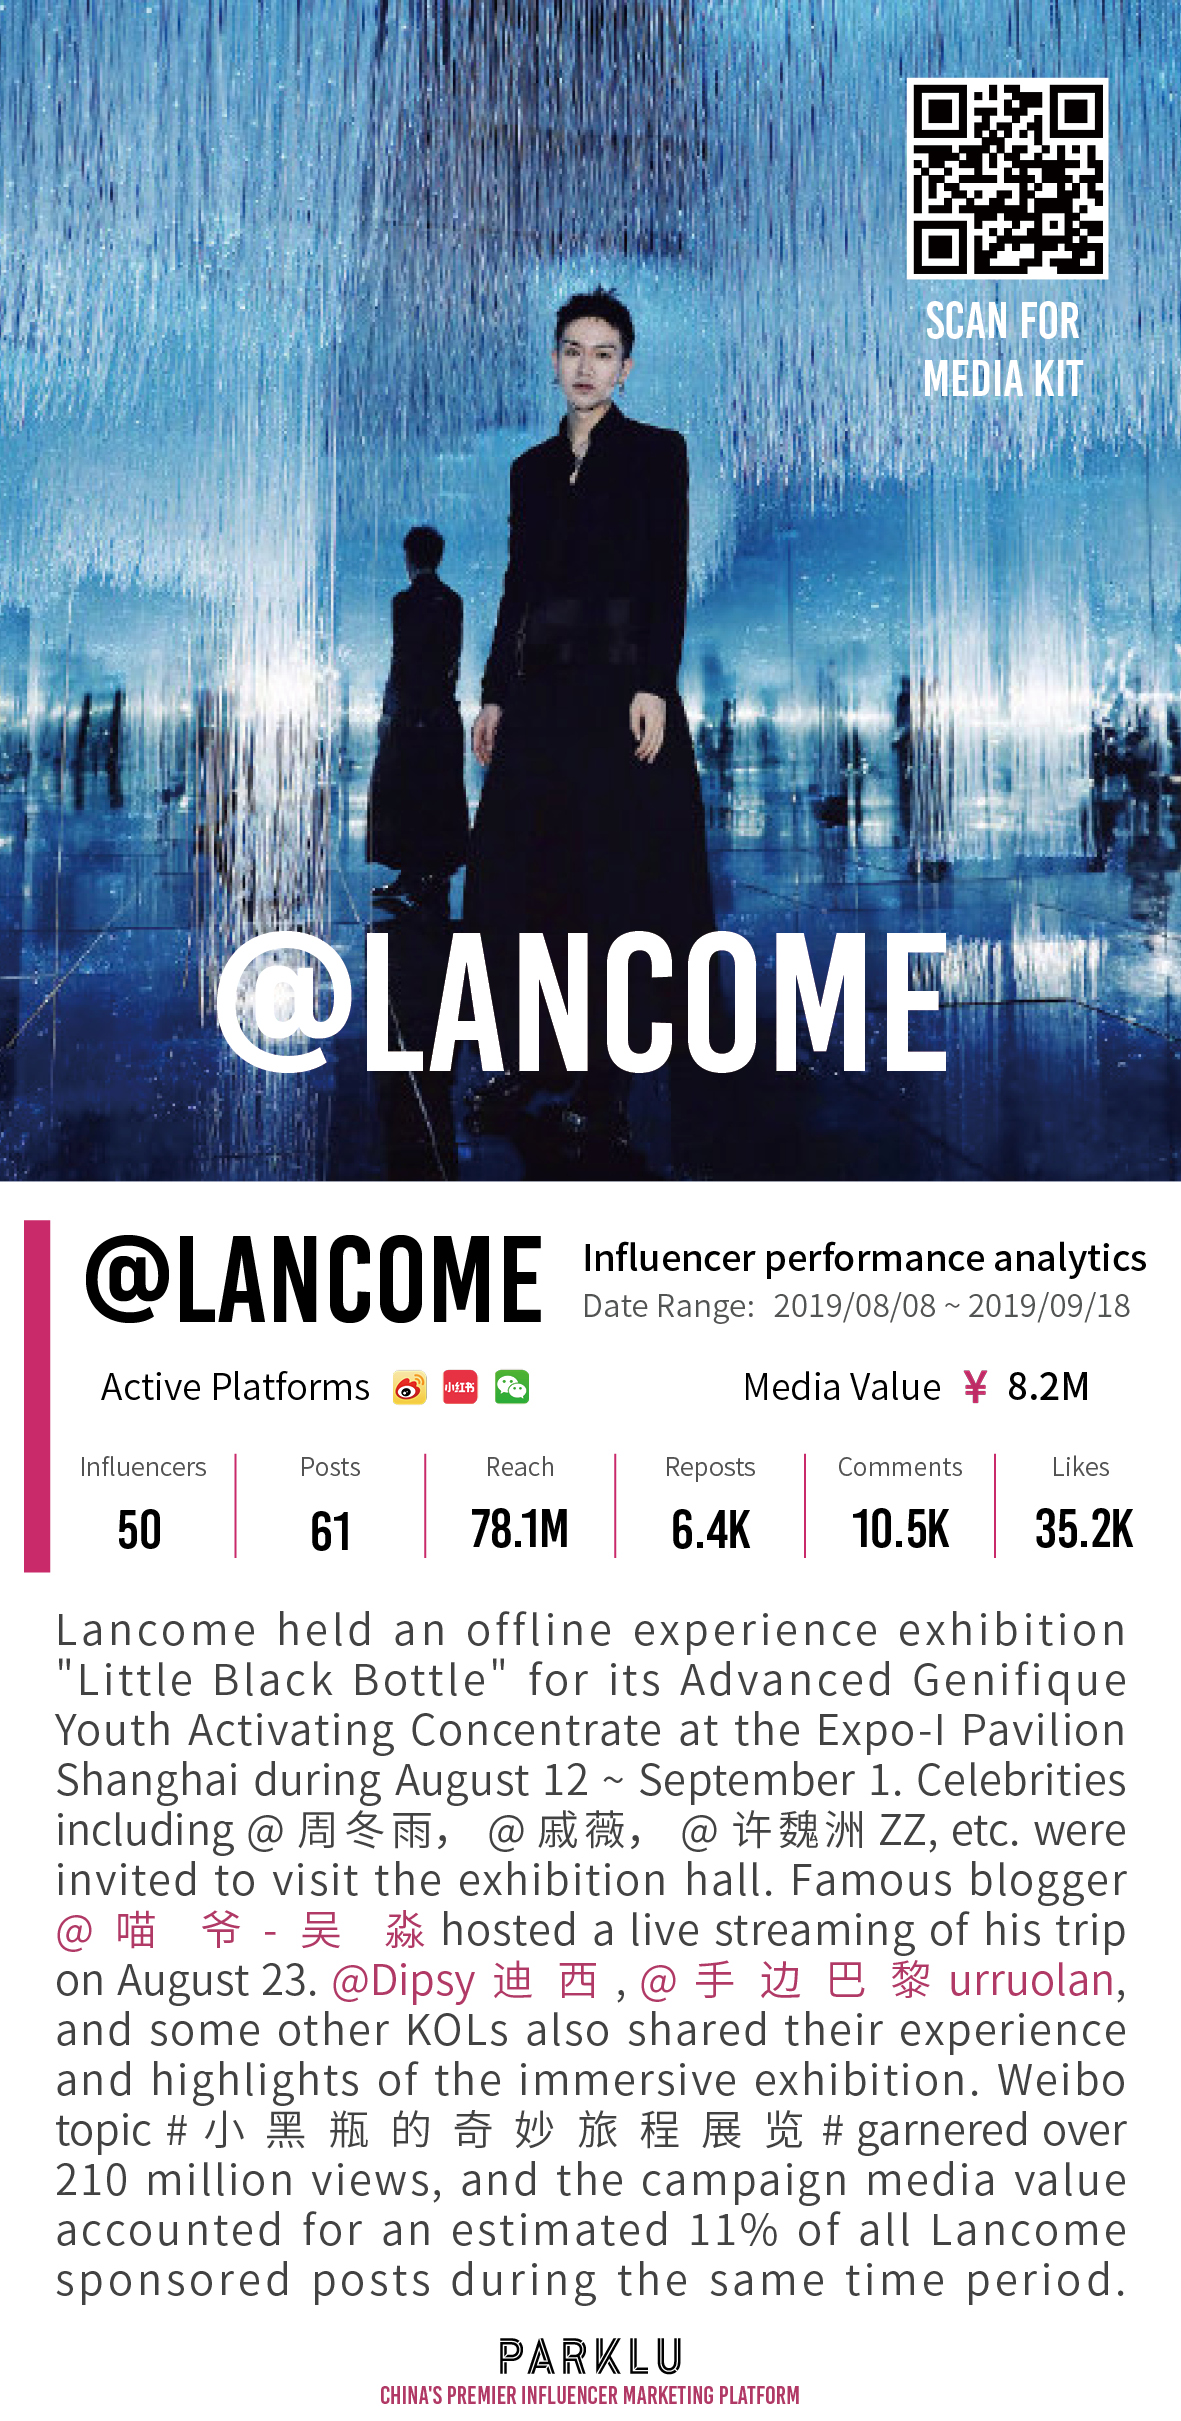 Lancome Offline Experience Exhibition